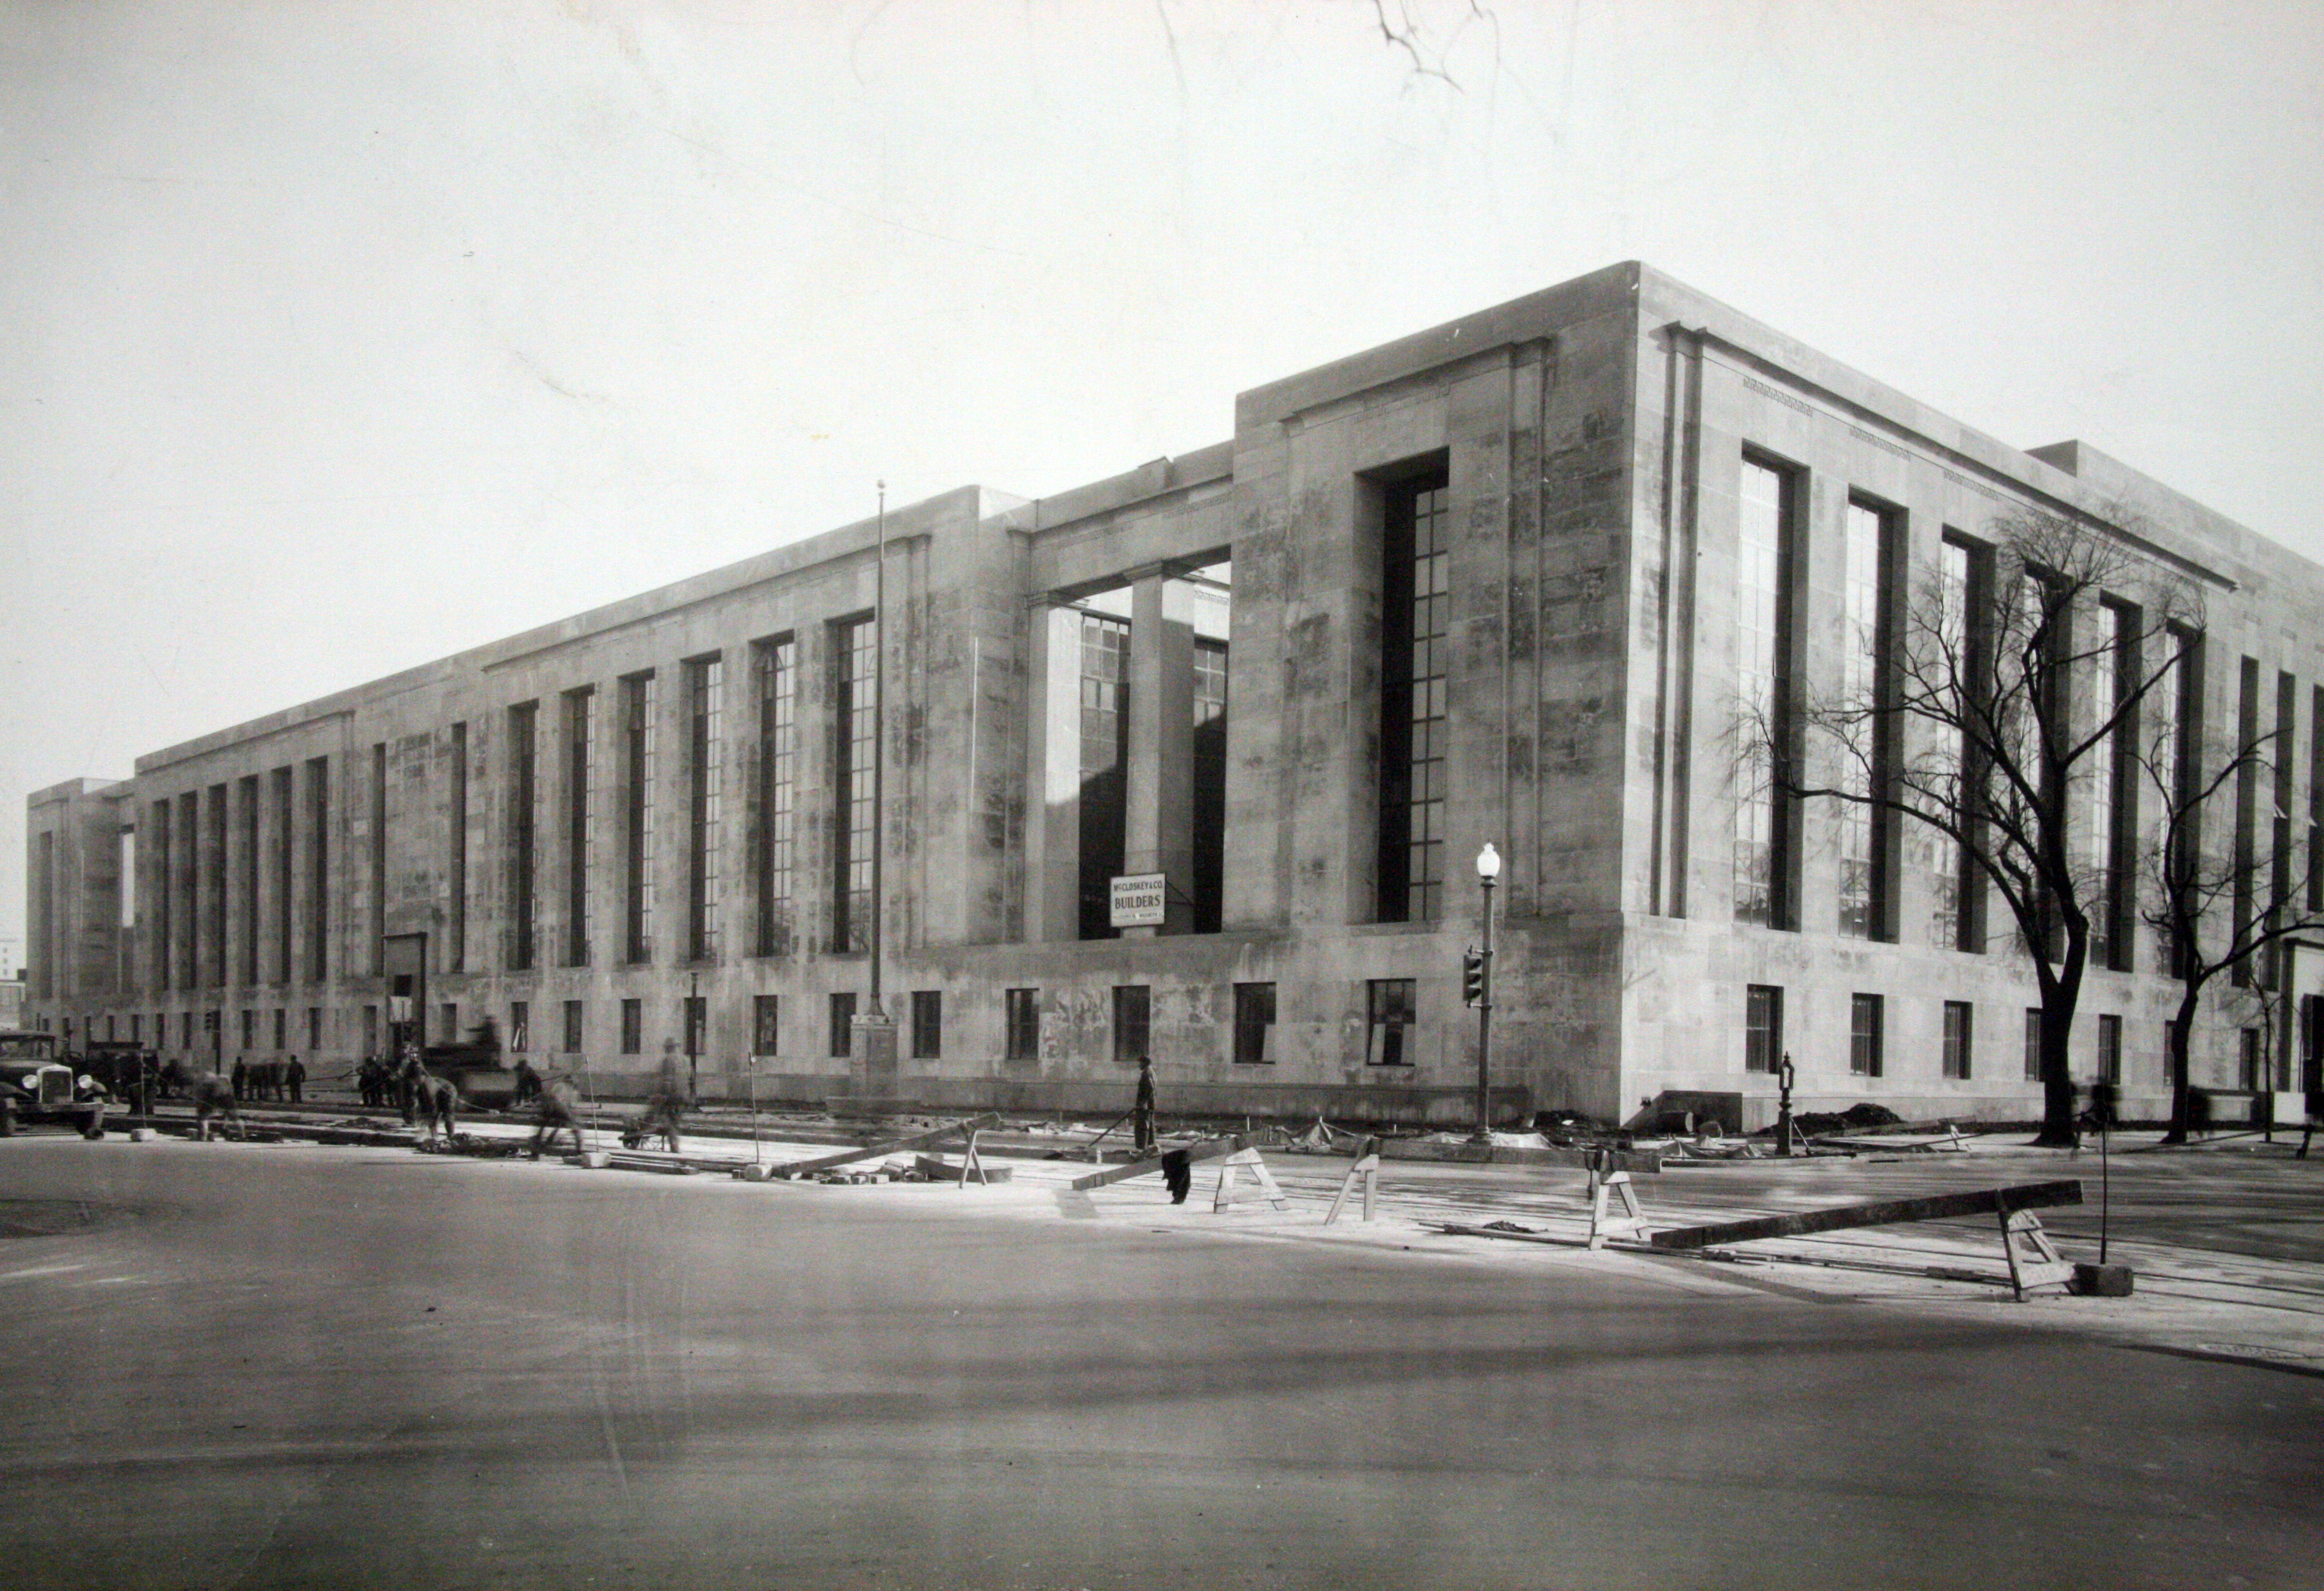 Wilbur J. Cohen Federal Building, View of Building Construction from the Corner of C and 3rd Streets SW, 1940.